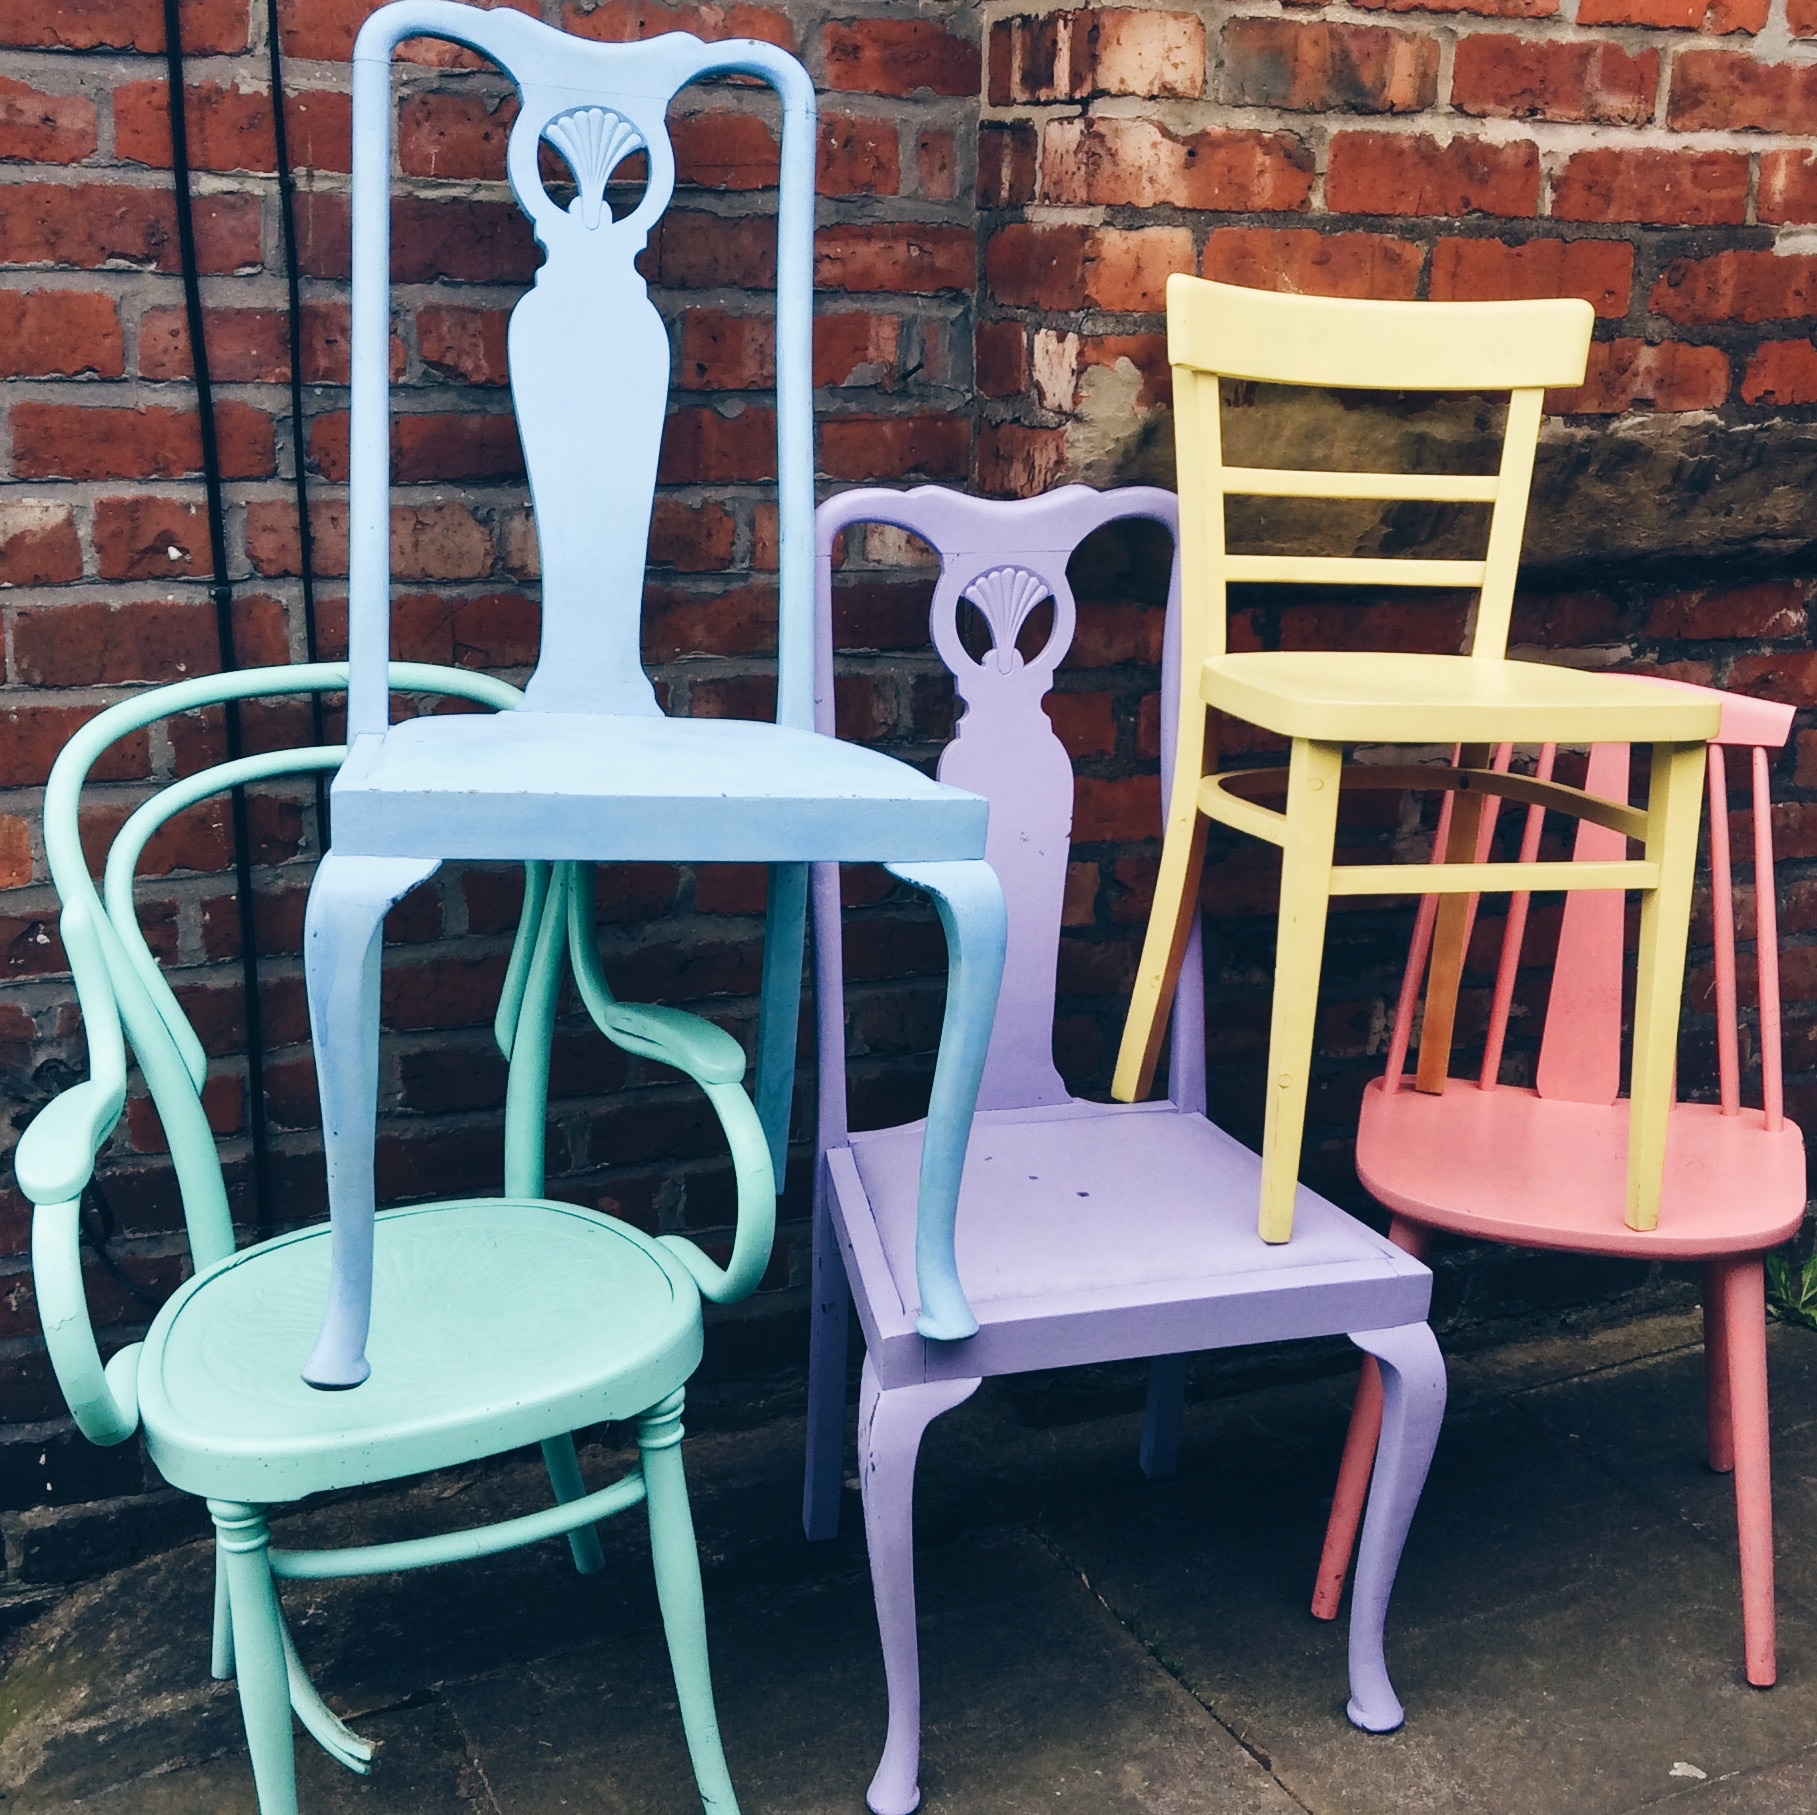 Pastel chairs